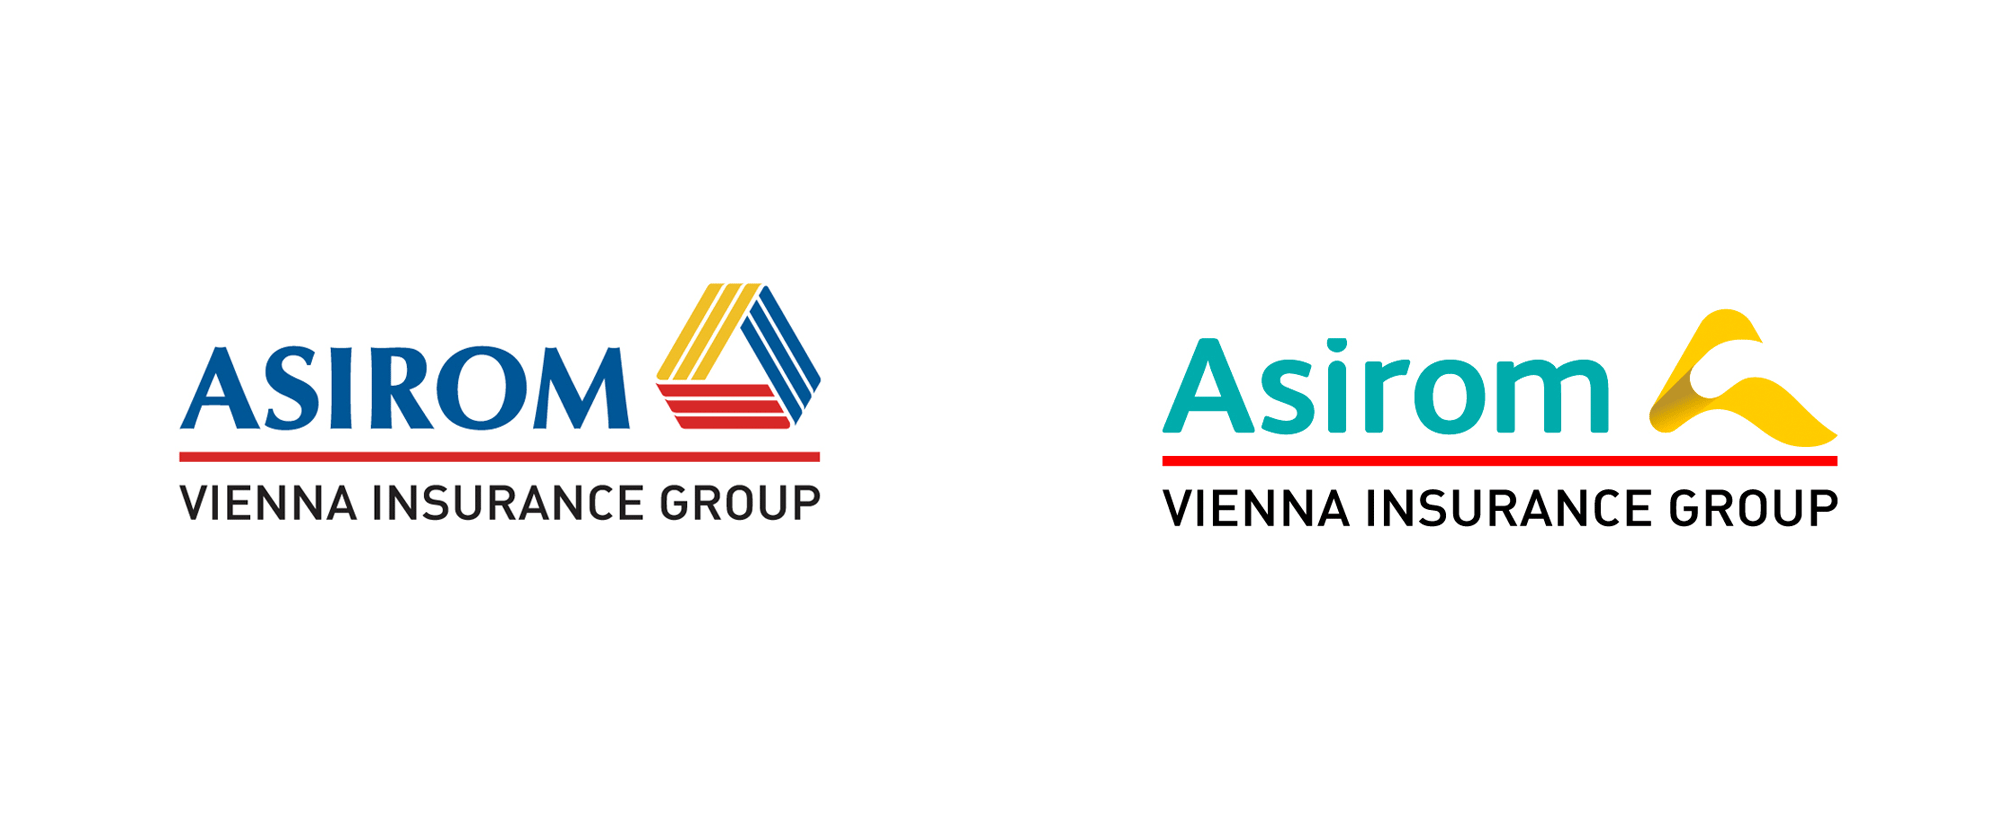 New Logo and Identity for Asirom by Innerpride Branding